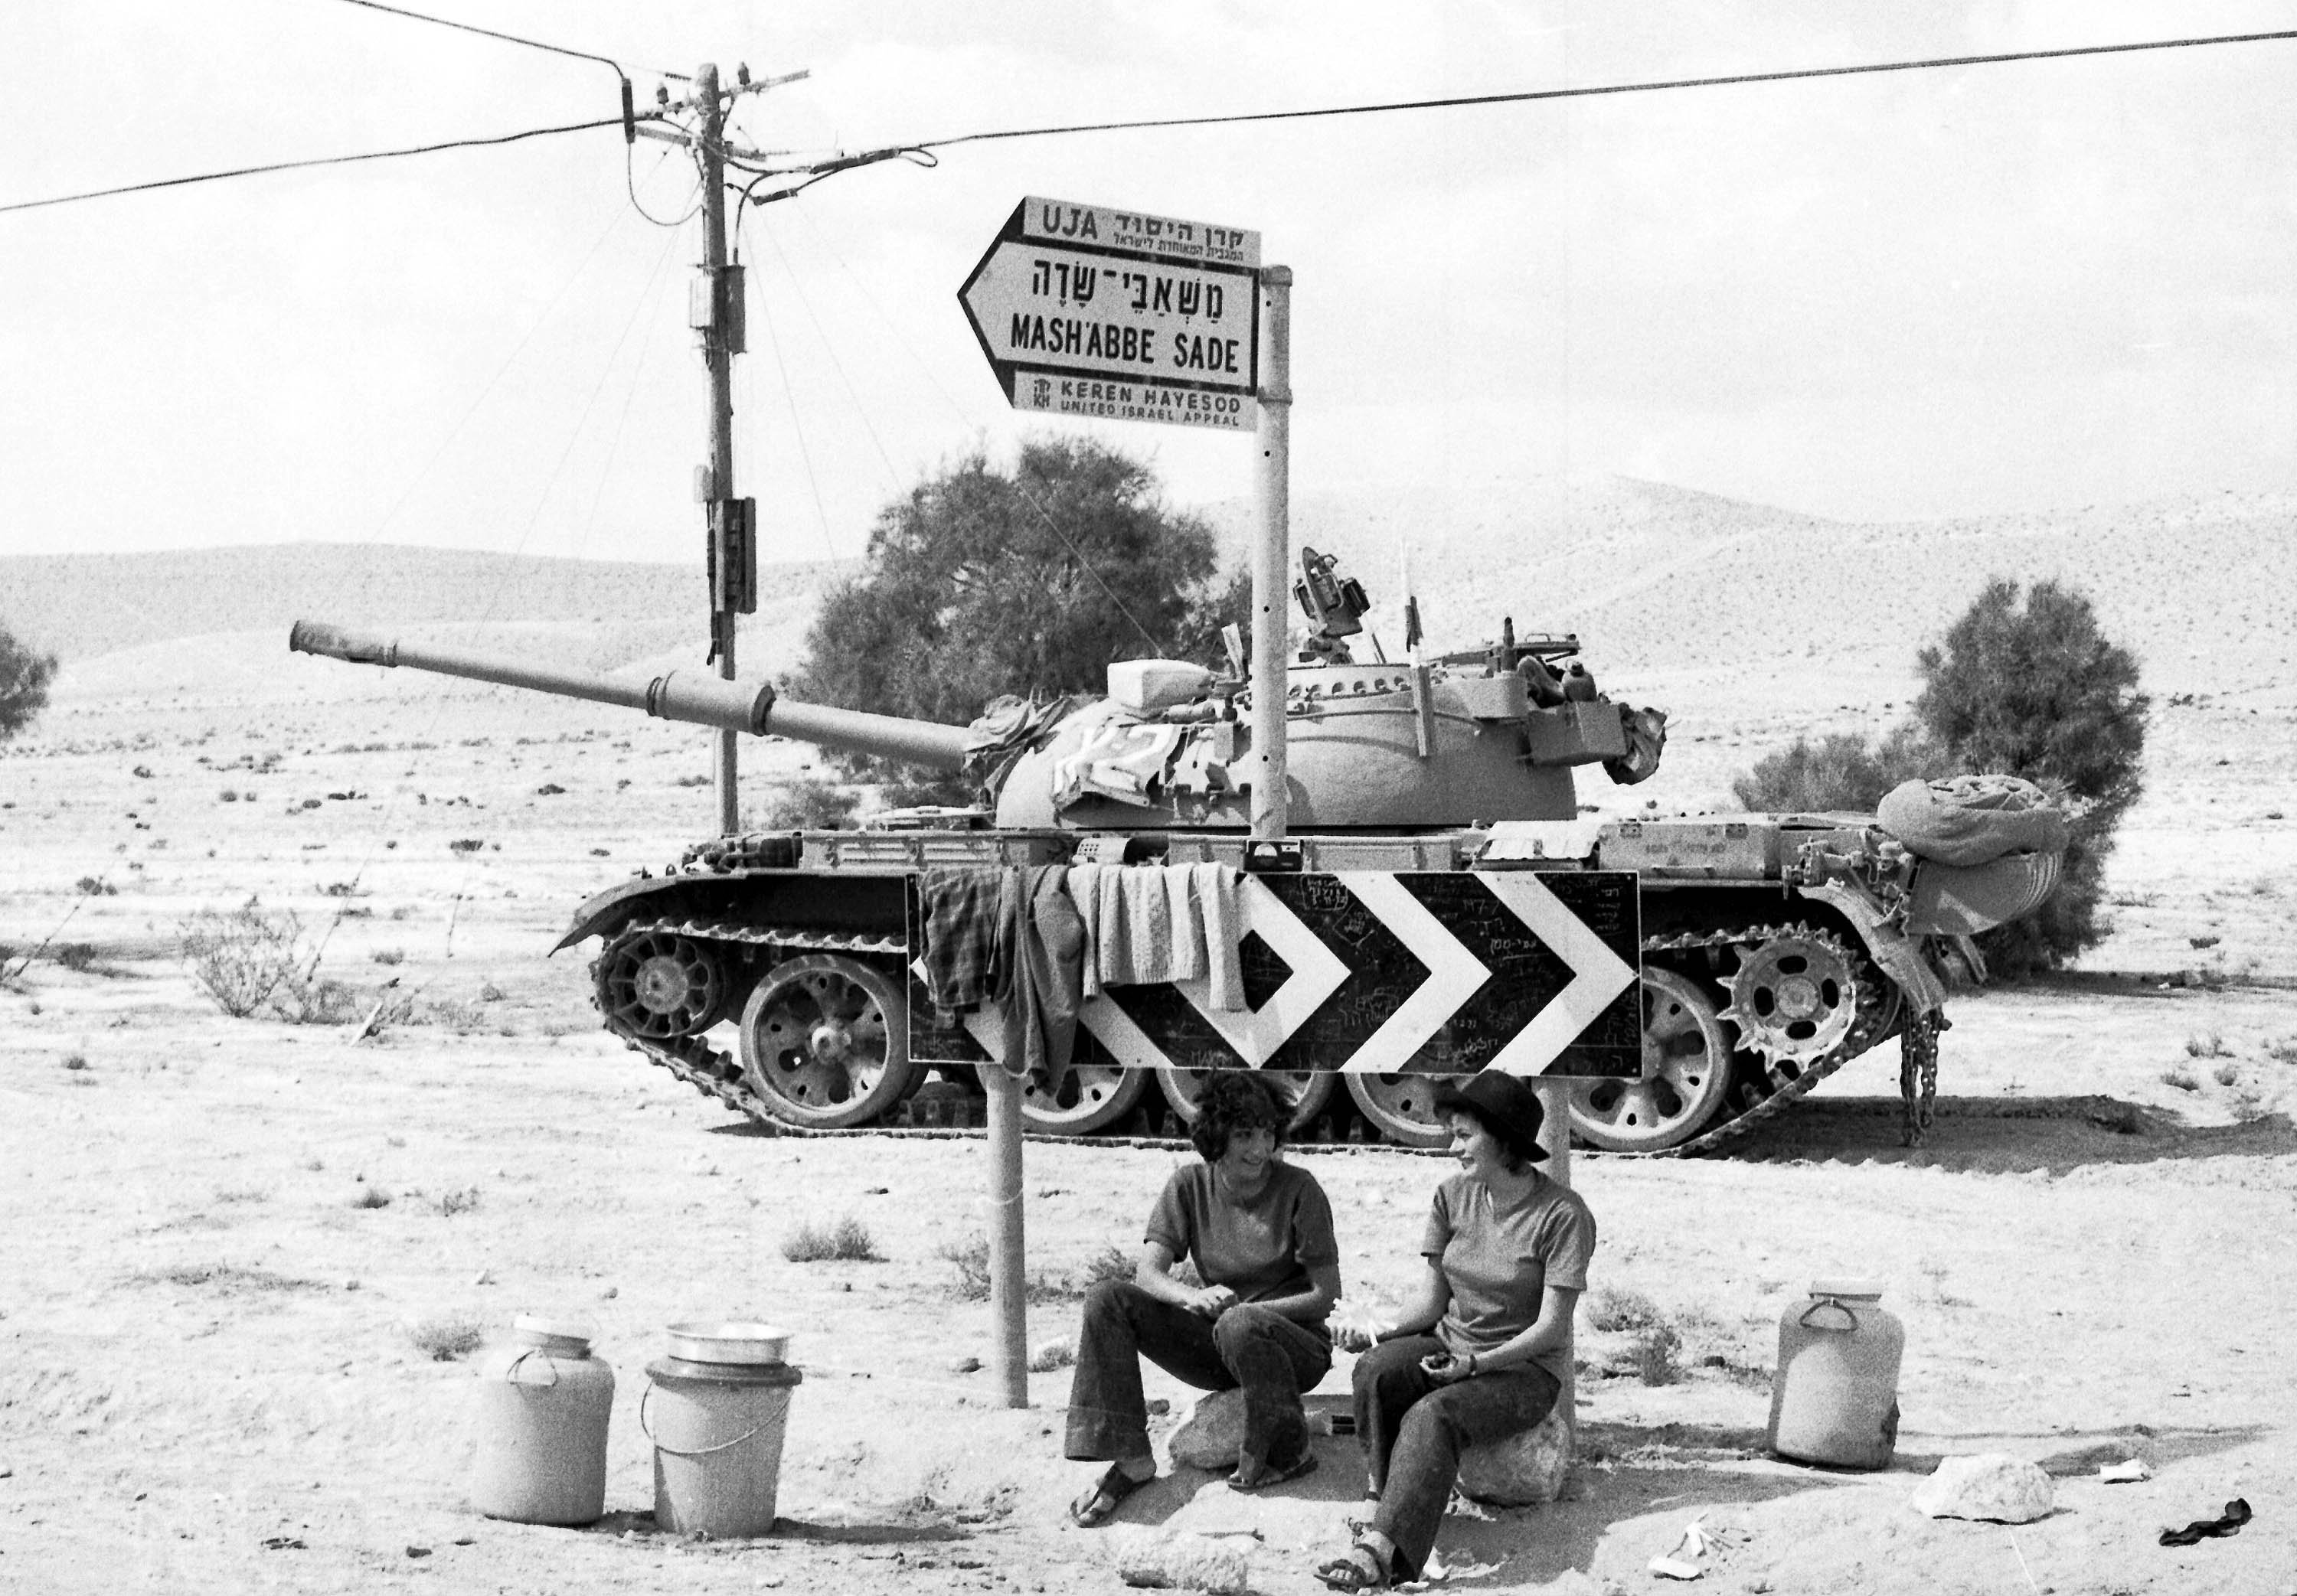 Two Israeli Army girls sit beneath a road sign, with a tank in the background, somewhere in the Sinai Desert, Oct. 8, 1973